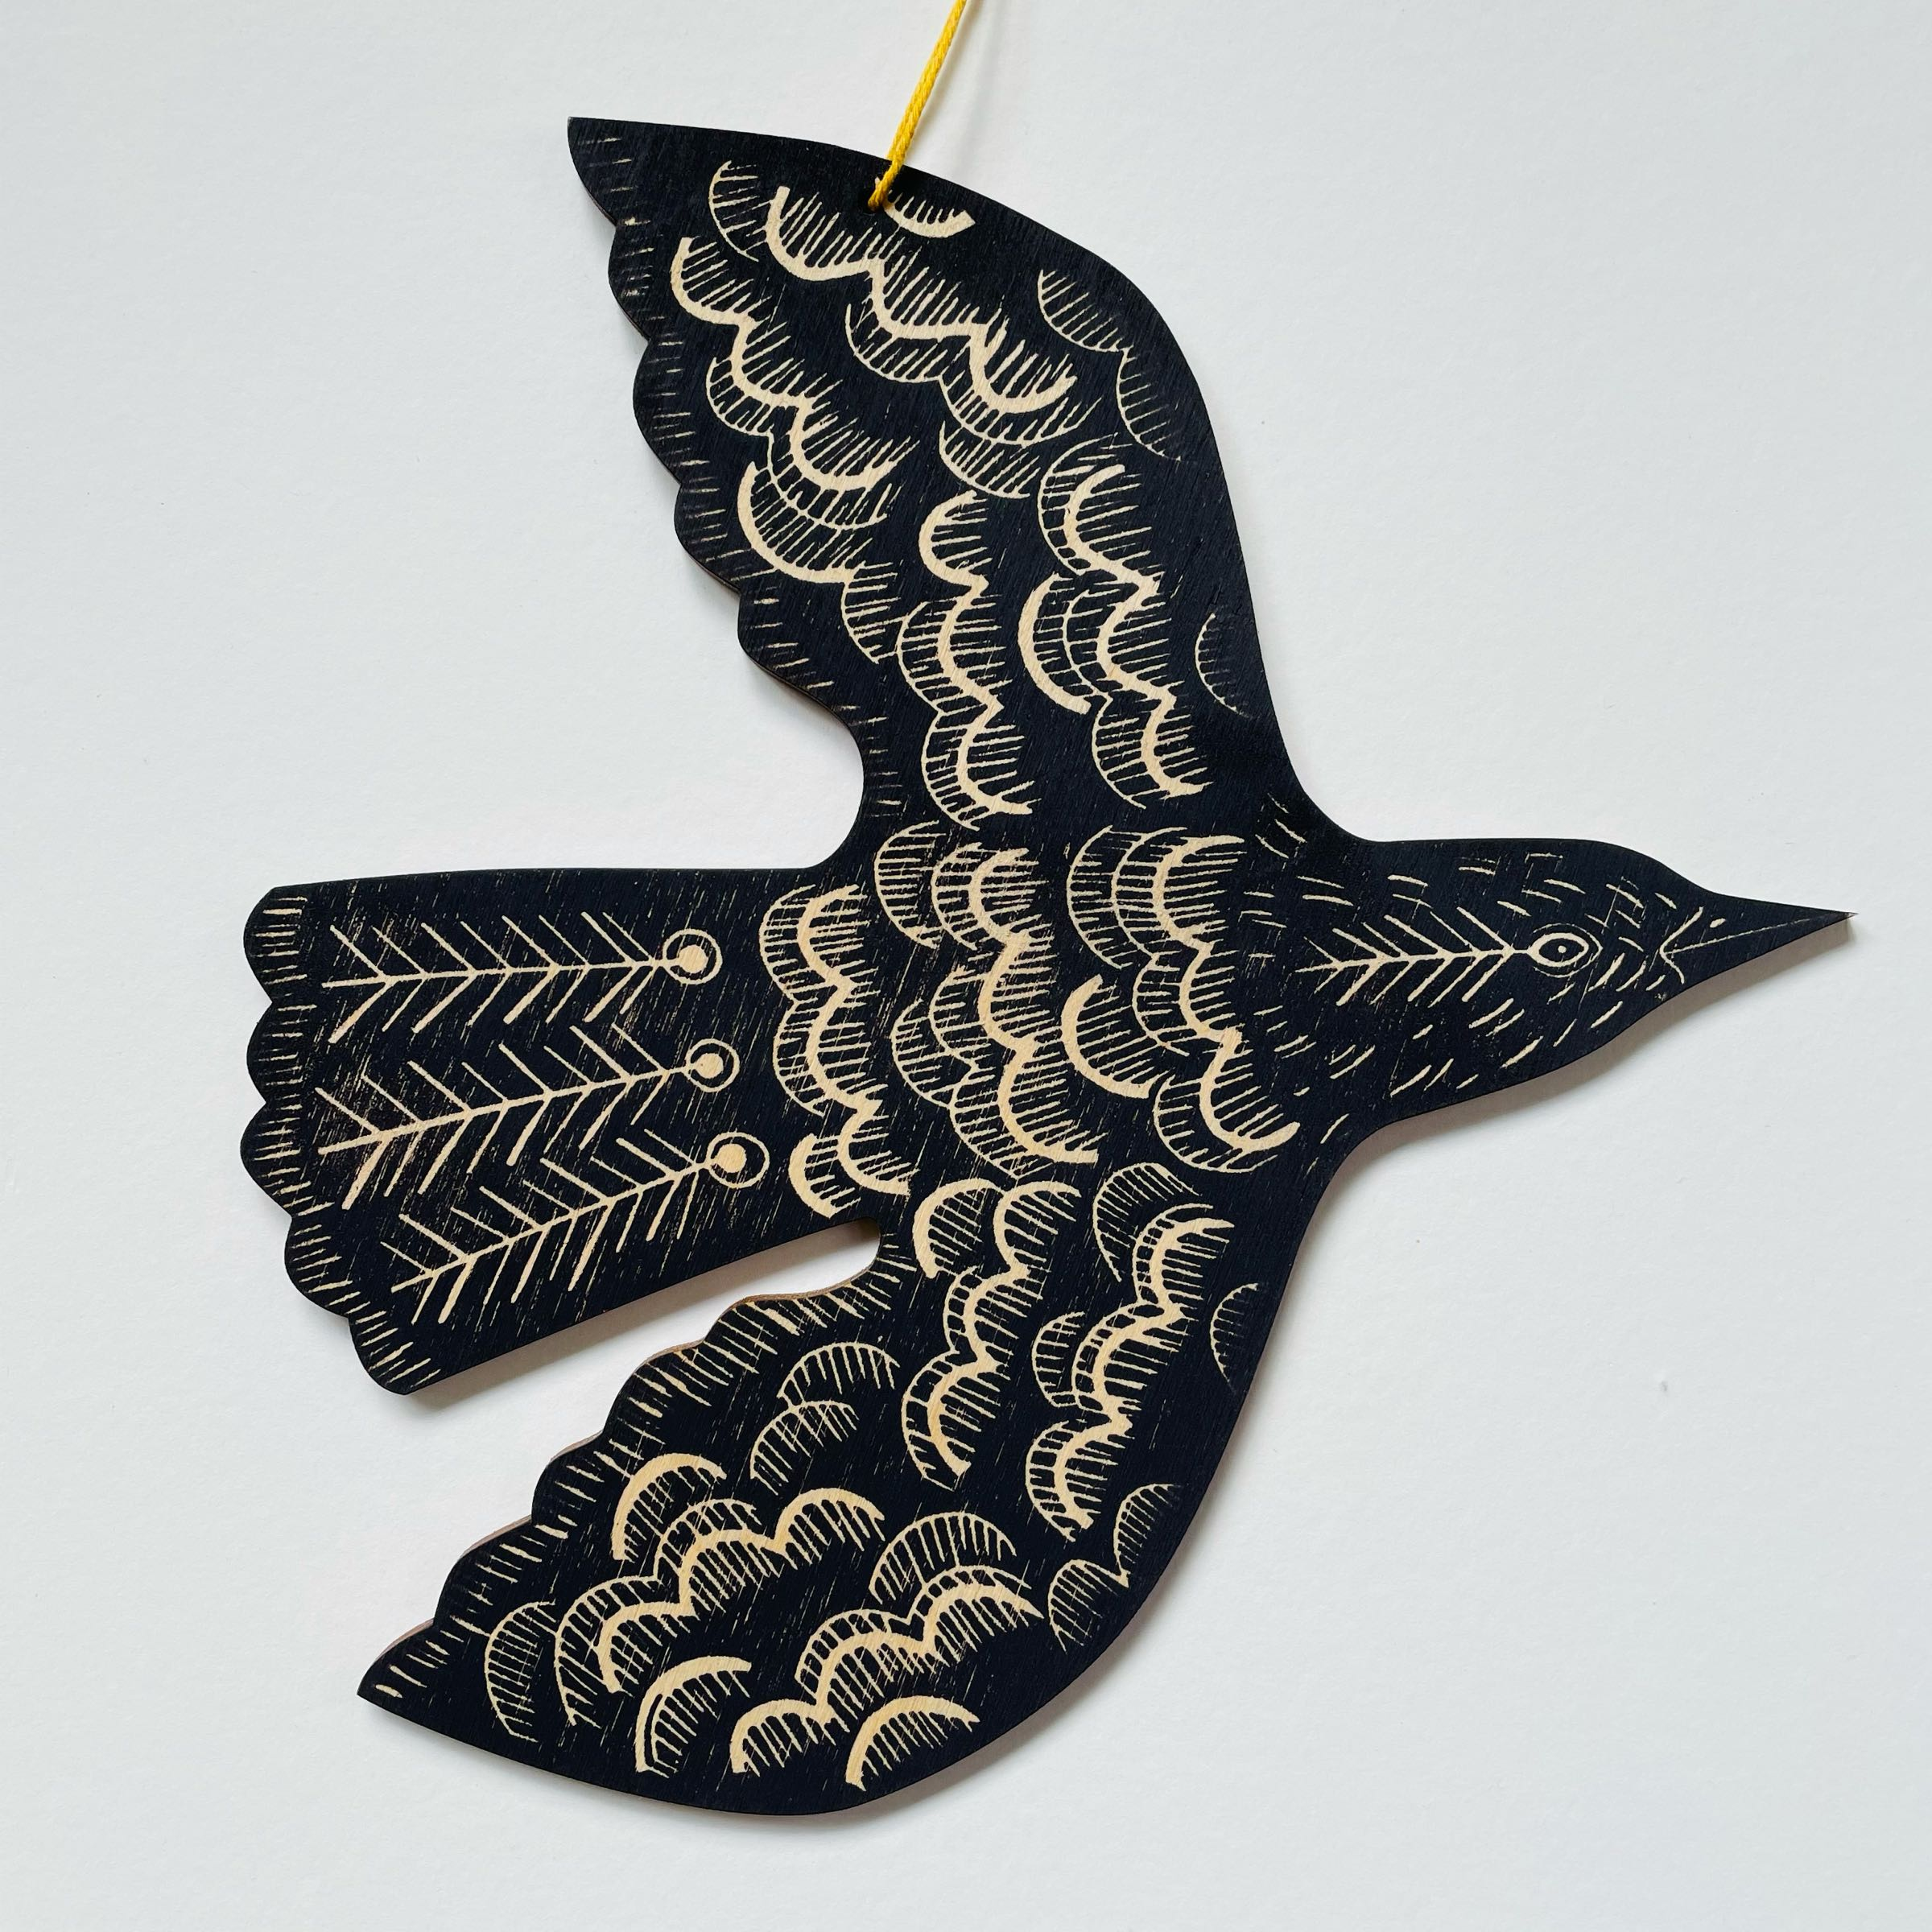 Hanging Blackbird by Kate Millbank, Dark purple-black